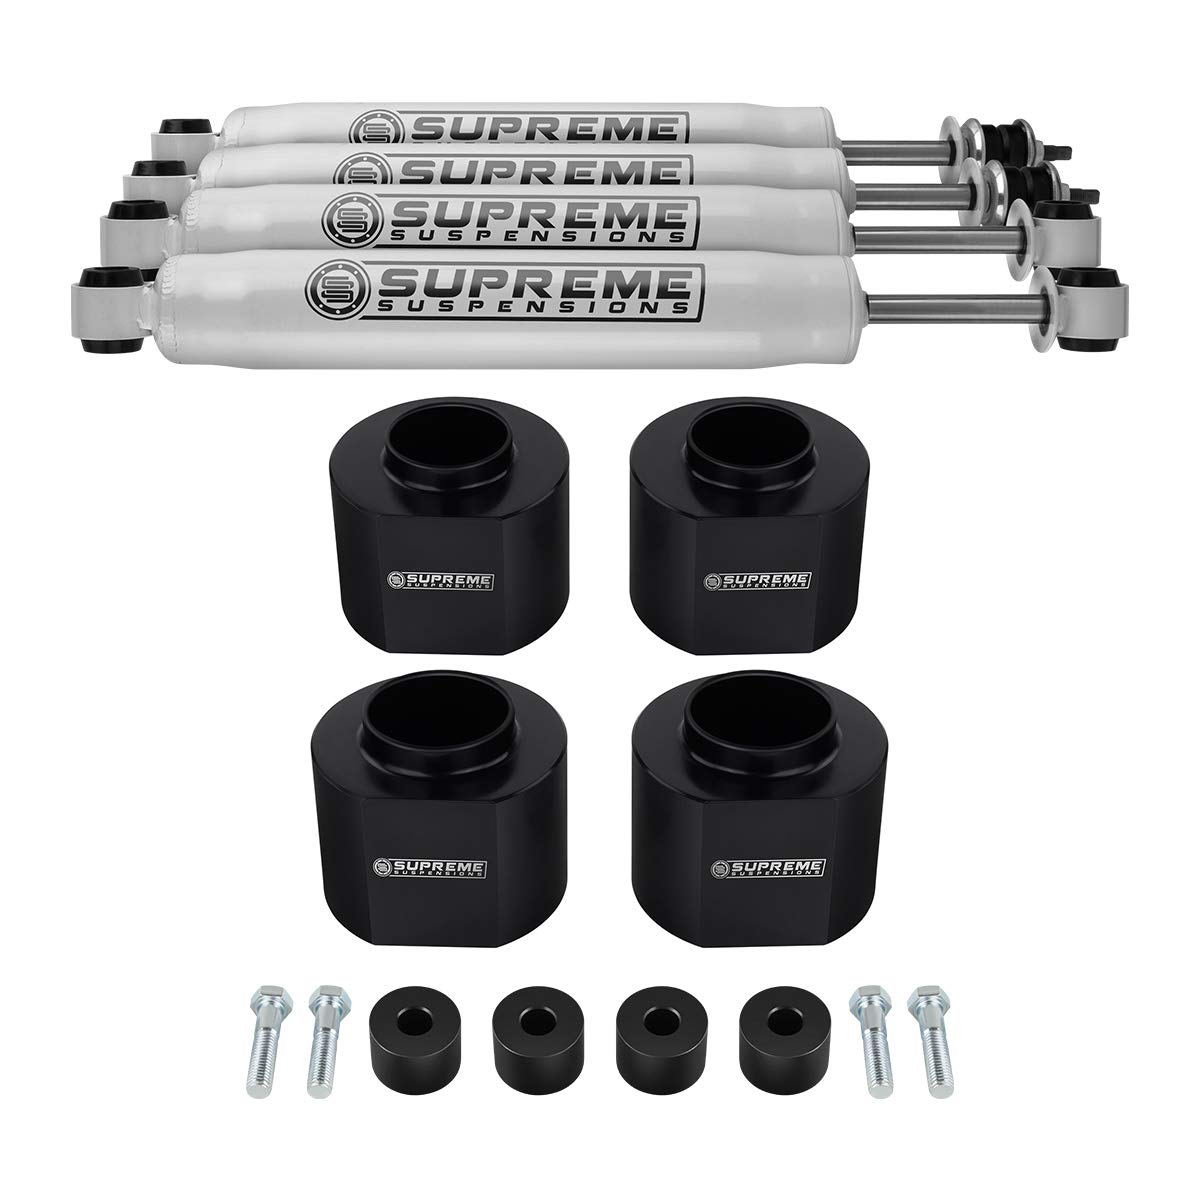 Pro Performance Series Shocks 3 Rear Suspension Lift Supreme Suspensions Easy Install Jeep Grand Cher Grand Cherokee Lift Kit Full Suspension Lift and Upgrade 3 Front Suspension Lift Transfer Case Drop CNC Machined High Crystalline Delrin Black